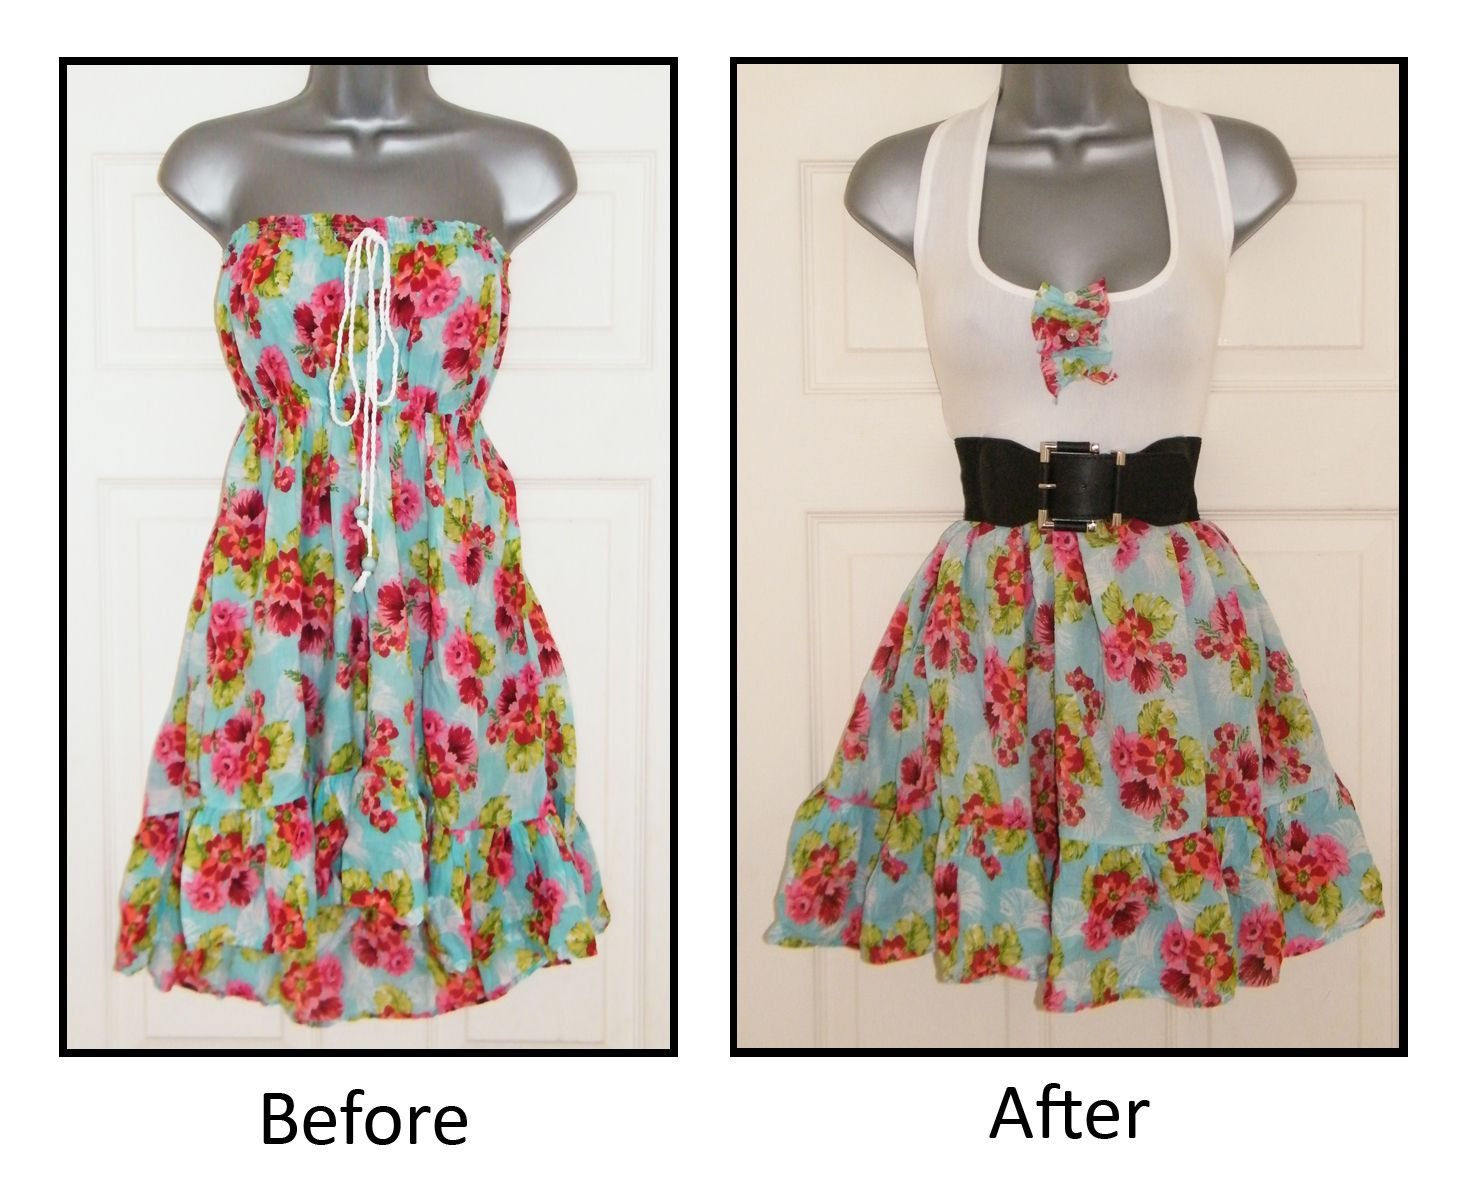 Lola Nova Combining Old Clothes Repurposed Upcycled Clothing Pinterest Clothes Upcycling